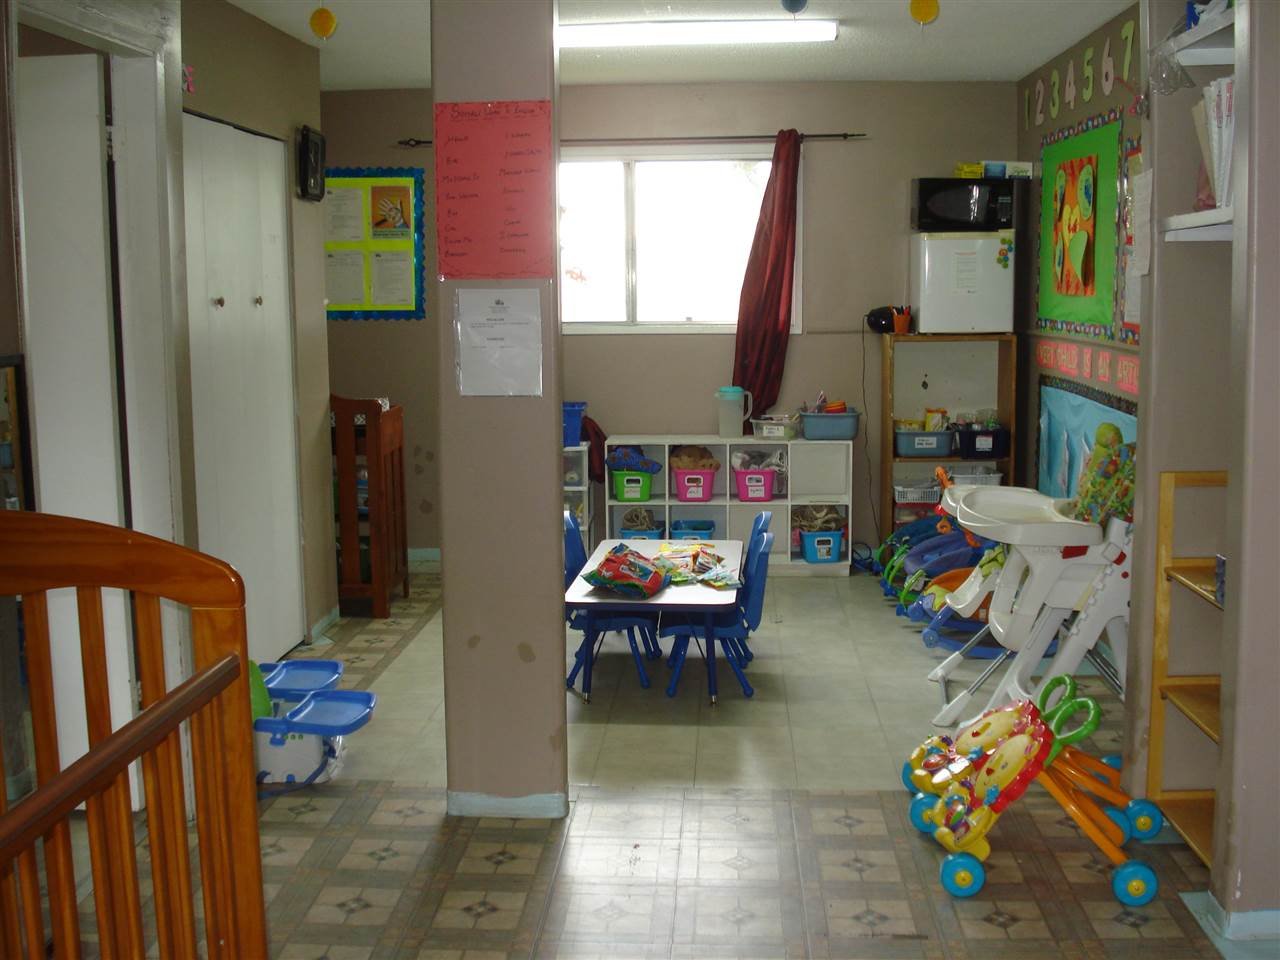 This Just under <50  Chlidren Capacity Daycare Centre is running FULL Enrolment plus waiting Lists for all age groups.This Centre has The reputation of a Great childcare provider in this community for a Long Long time. The Toddler Room License 12 Staff 2, Baby Room License 8 Staff 2, Pre-Schoolers License 13 Staff 2 and OSC Room Lic 10 Staff 1. Also, a Program Director's Office, Kitchen, 4 Bathrooms, Storage and and a Park like Exterior Play area with full placement of slides and other activity tools. Fully Licensed and Accredited for many years. Staff are all with complete ECE credentials, First aid CPR and Food Handler Courses. A Long TERM competetive Lease is available to be transfered. High Income lower Expenses means a good Net monthly Income and return on your investment and hard work. Very Good Price of $249,000.